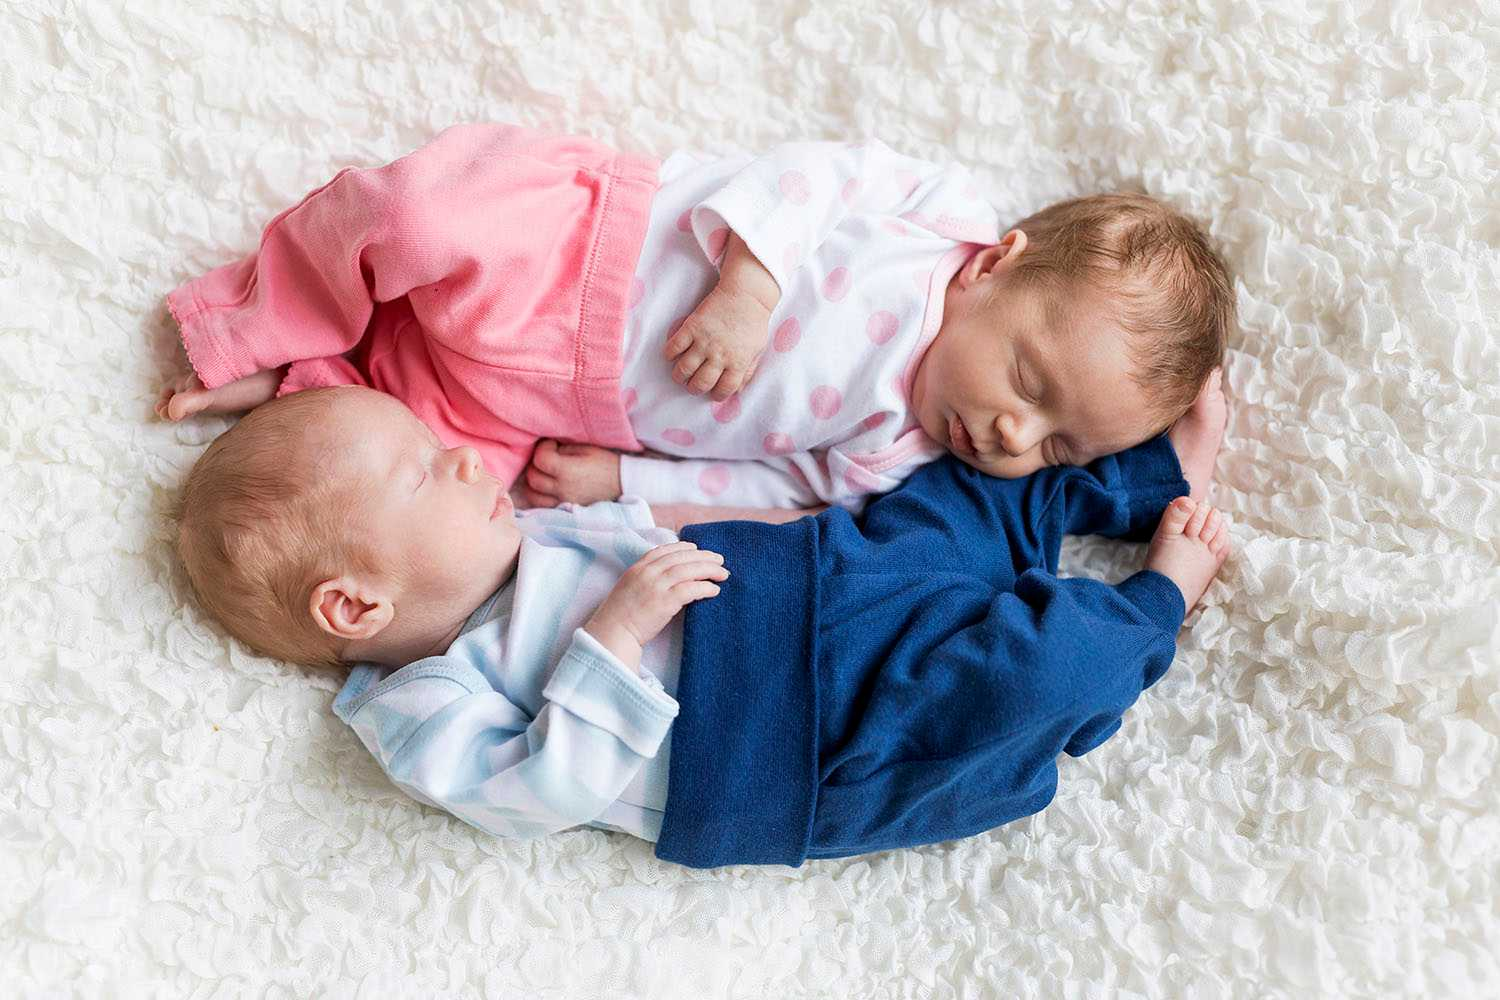 Revealed 121 unique baby names and their meanings closer